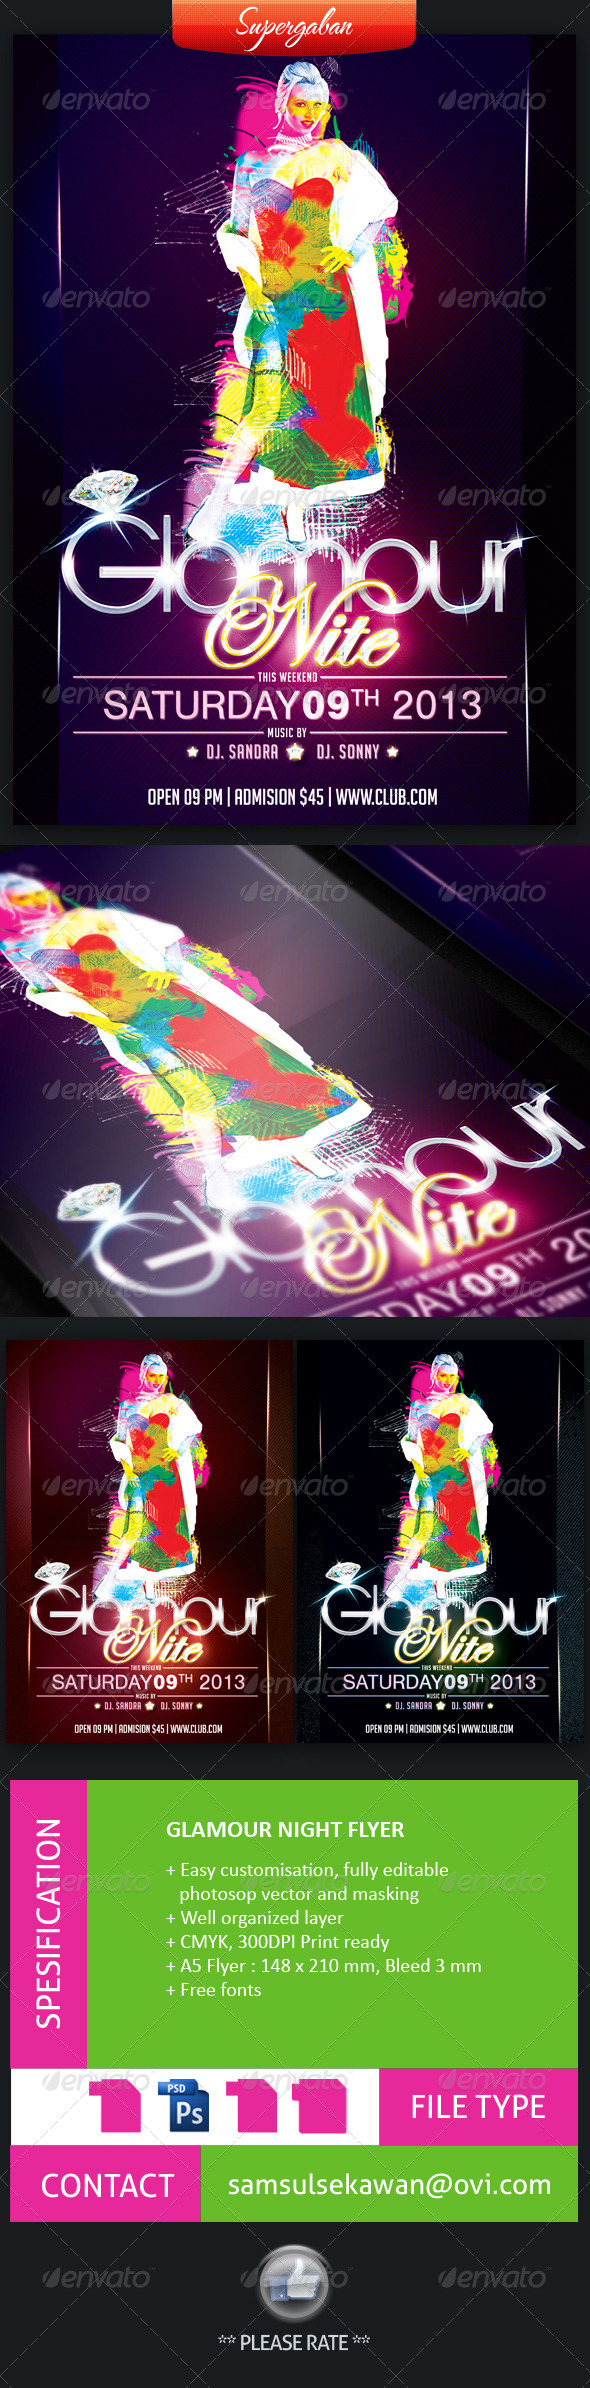 GraphicRiver Glamour Night Flyer 4431894